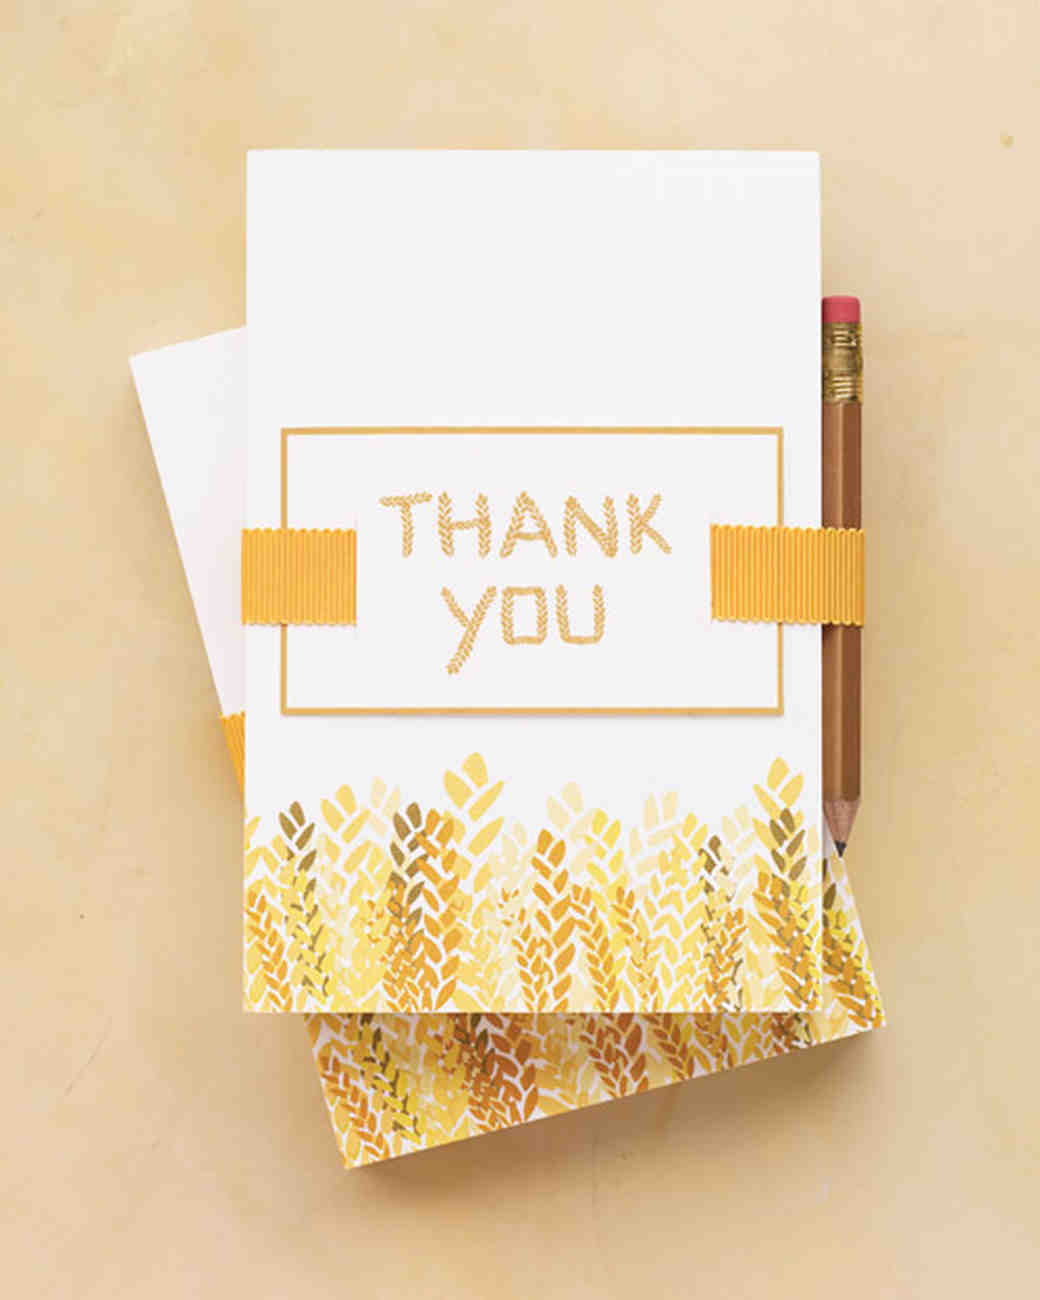 9 tips for writing thank you notes for wedding gifts martha 9 tips for writing thank you notes for wedding gifts martha stewart weddings altavistaventures Images